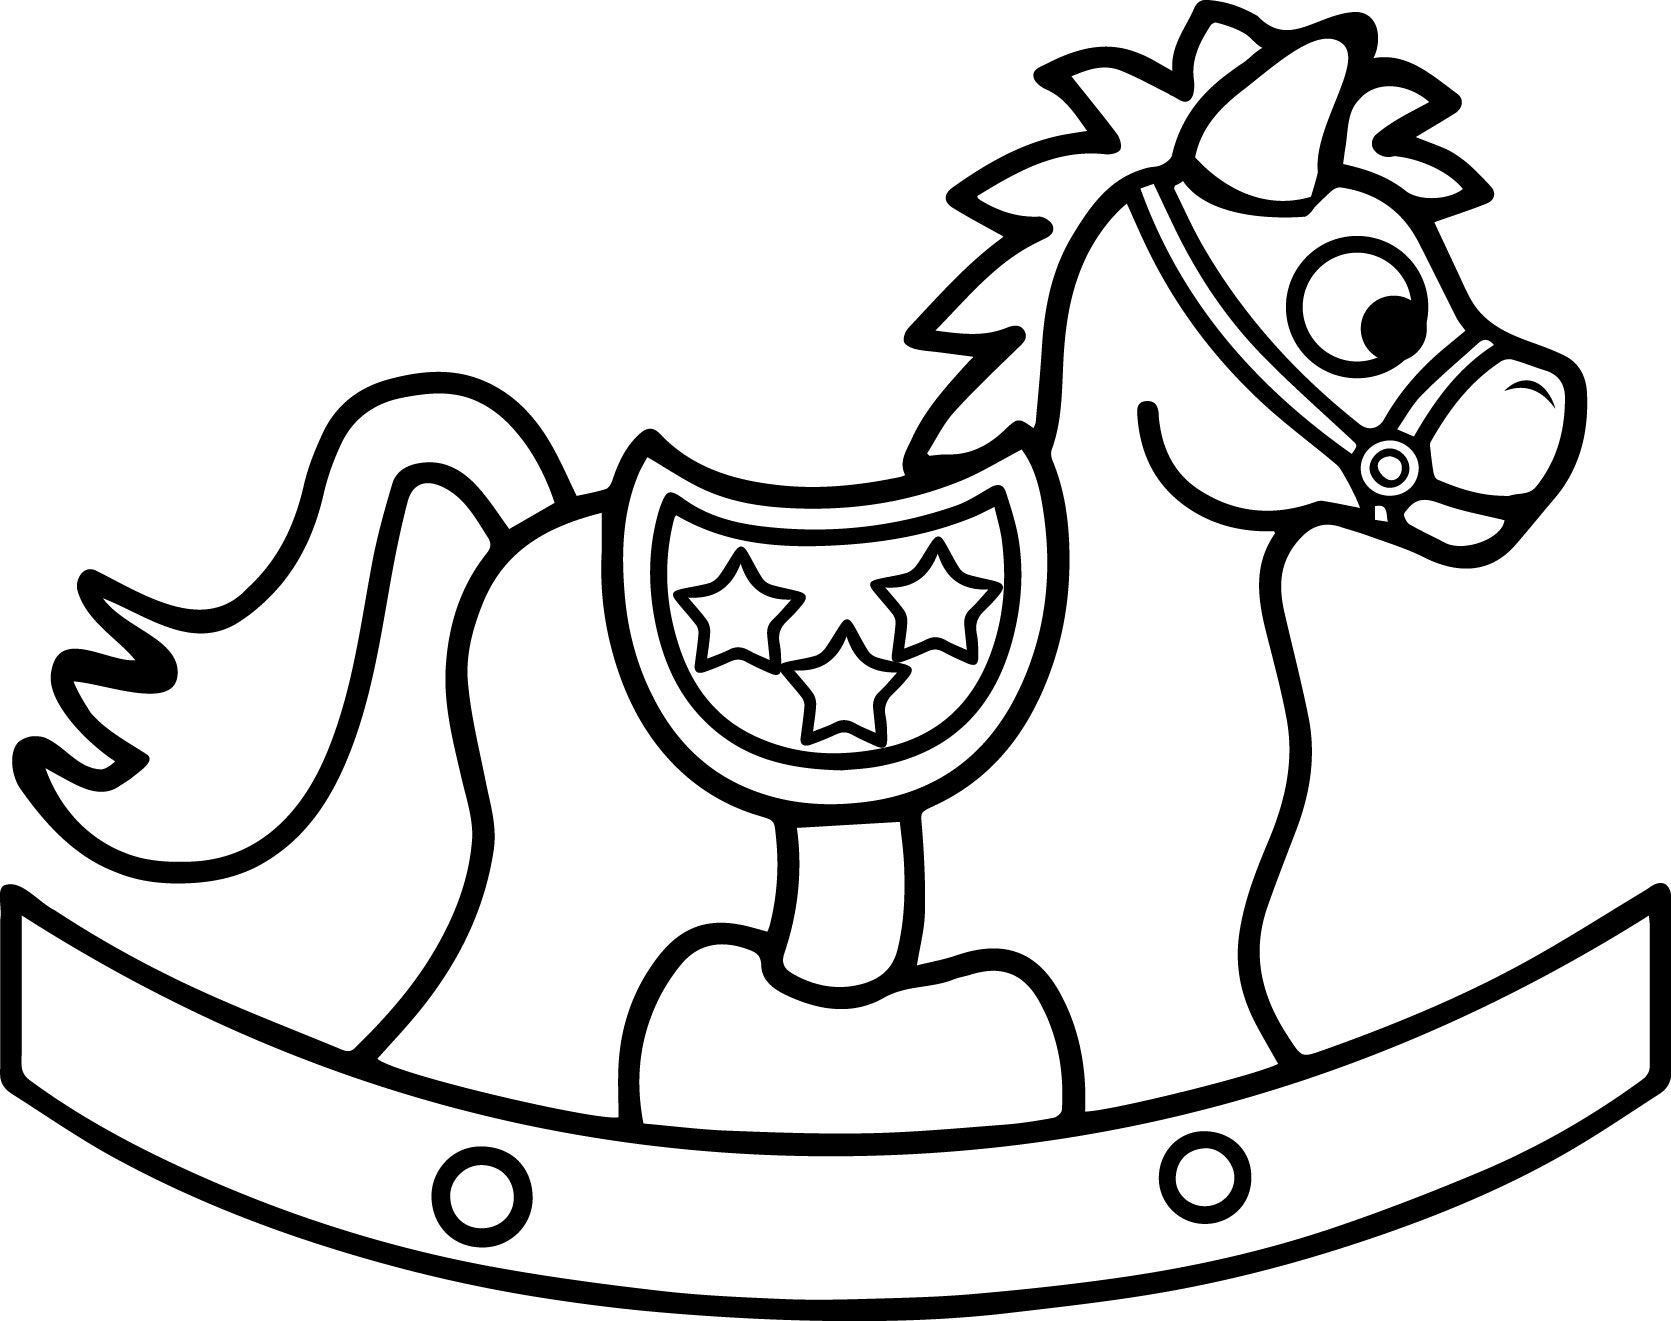 1671x1321 Amazing Horse Toy Coloring Page Wecoloringpage